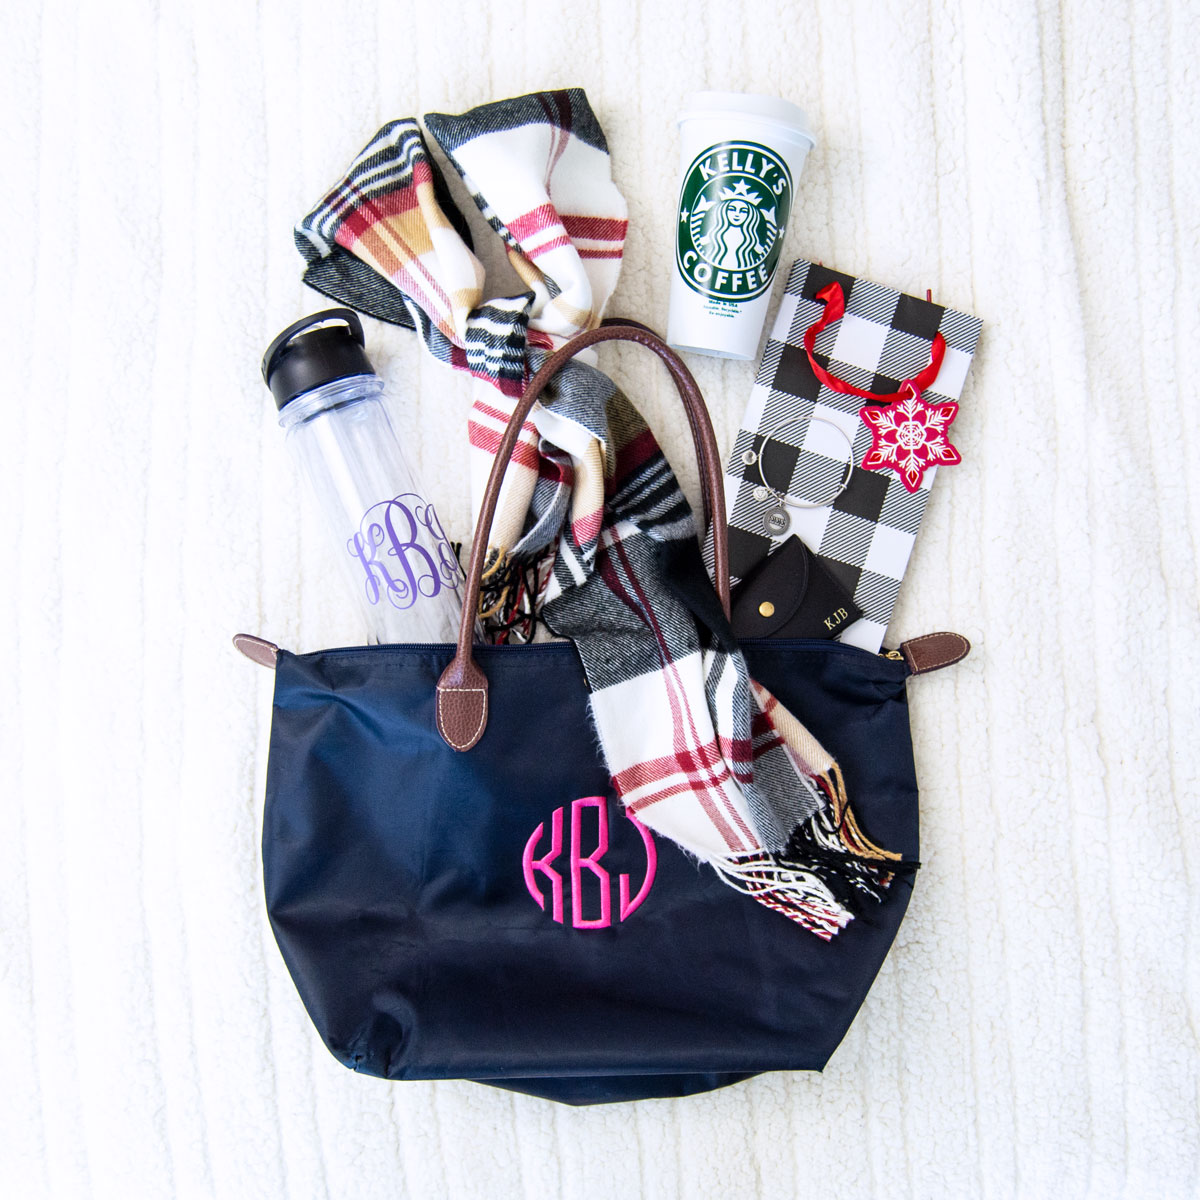 Last Minute Big Little Gifts for the Holidays